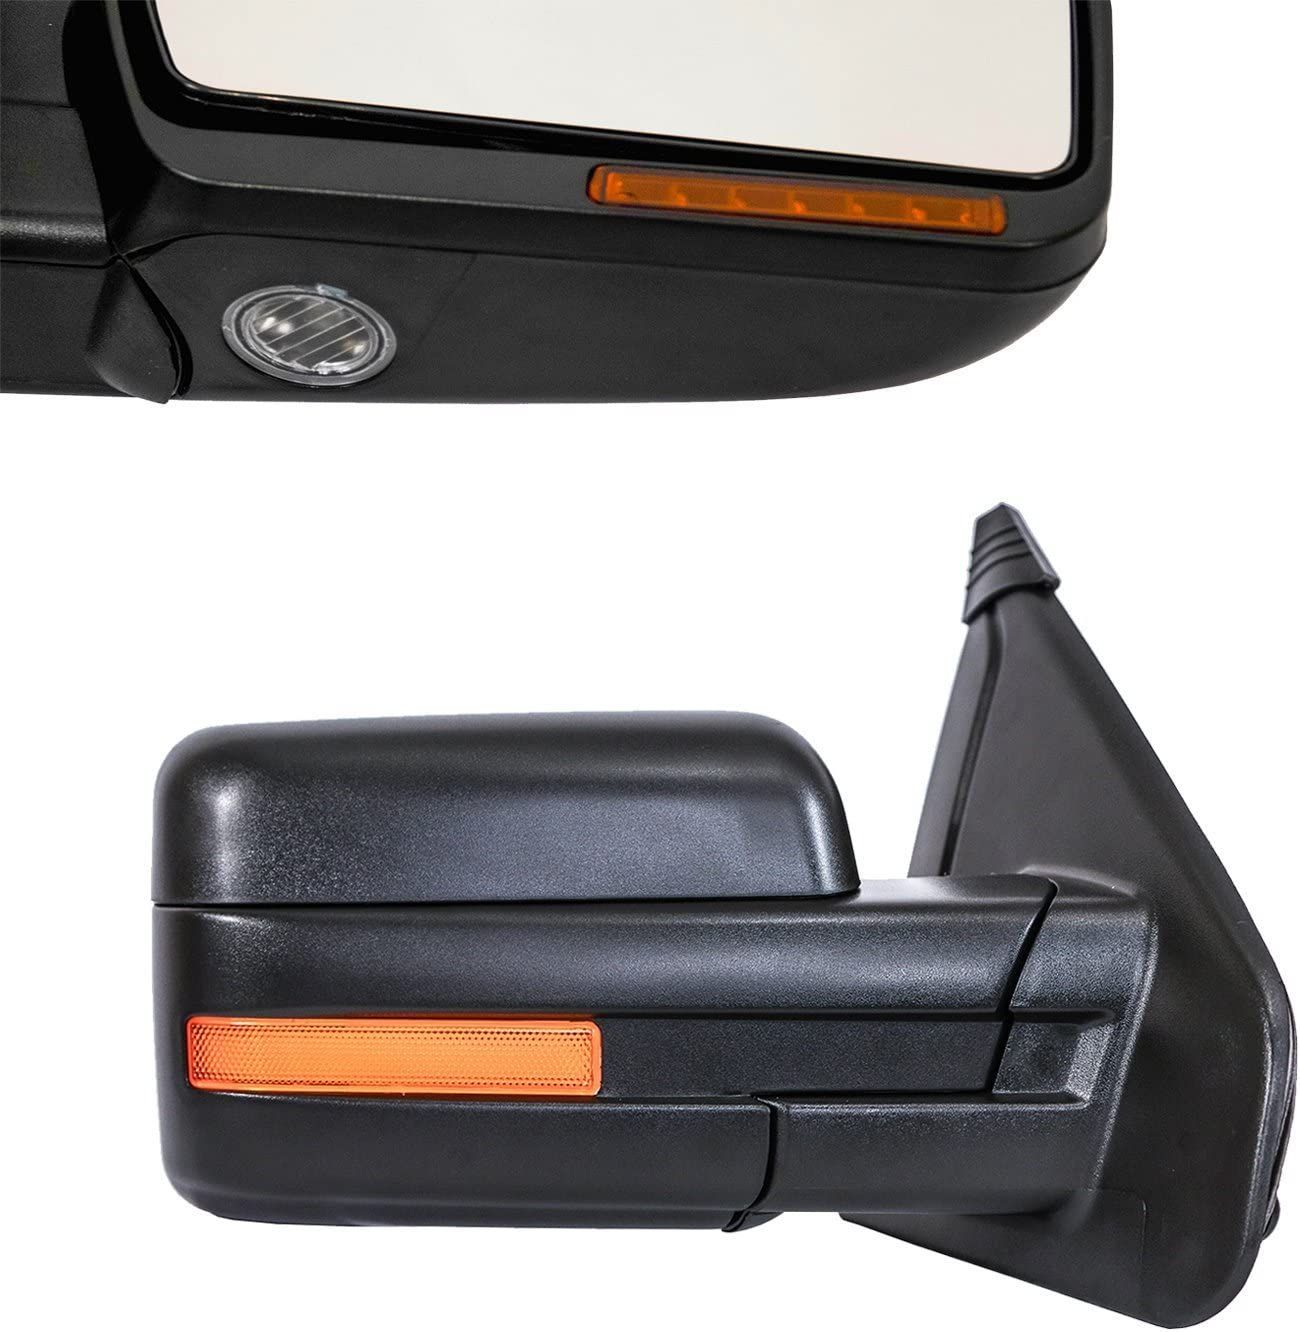 Paragon Parts OE Style Replacement Ford for 好評受付中 Mirror 2007-14 結婚祝い Side